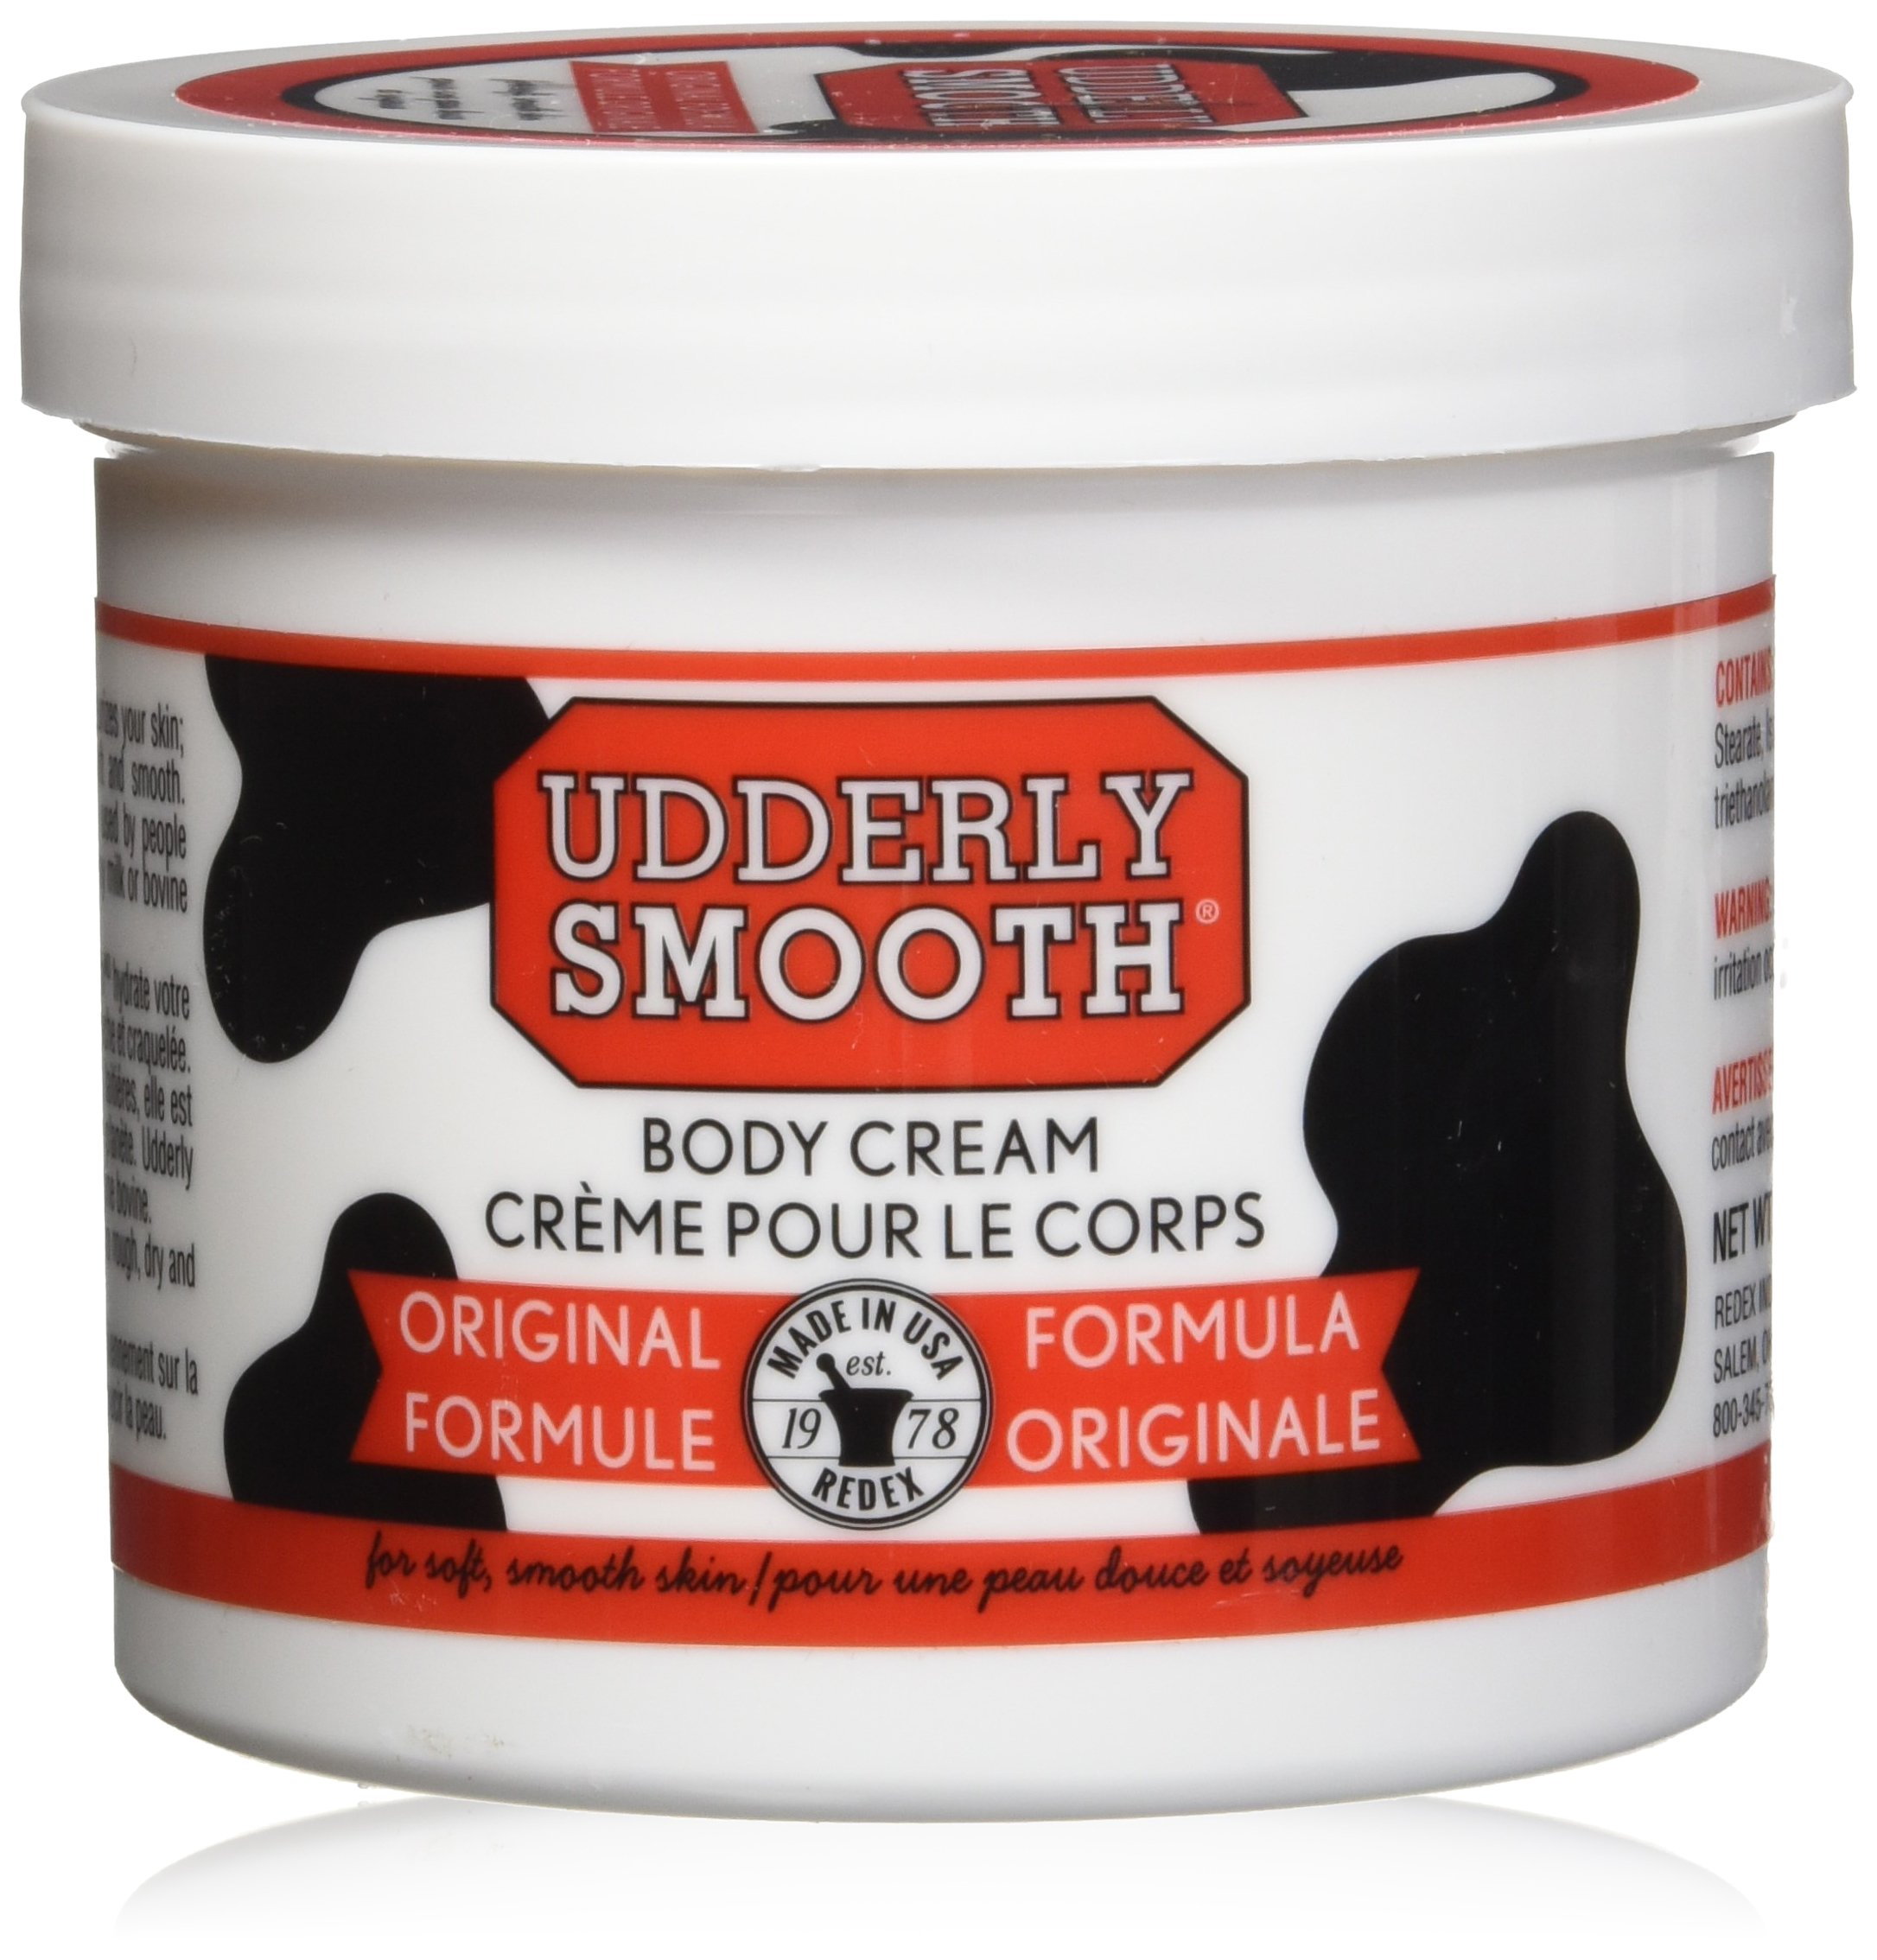 Udderly Smooth Body Cream 12 oz (Pack of 6) by Udderly Smooth